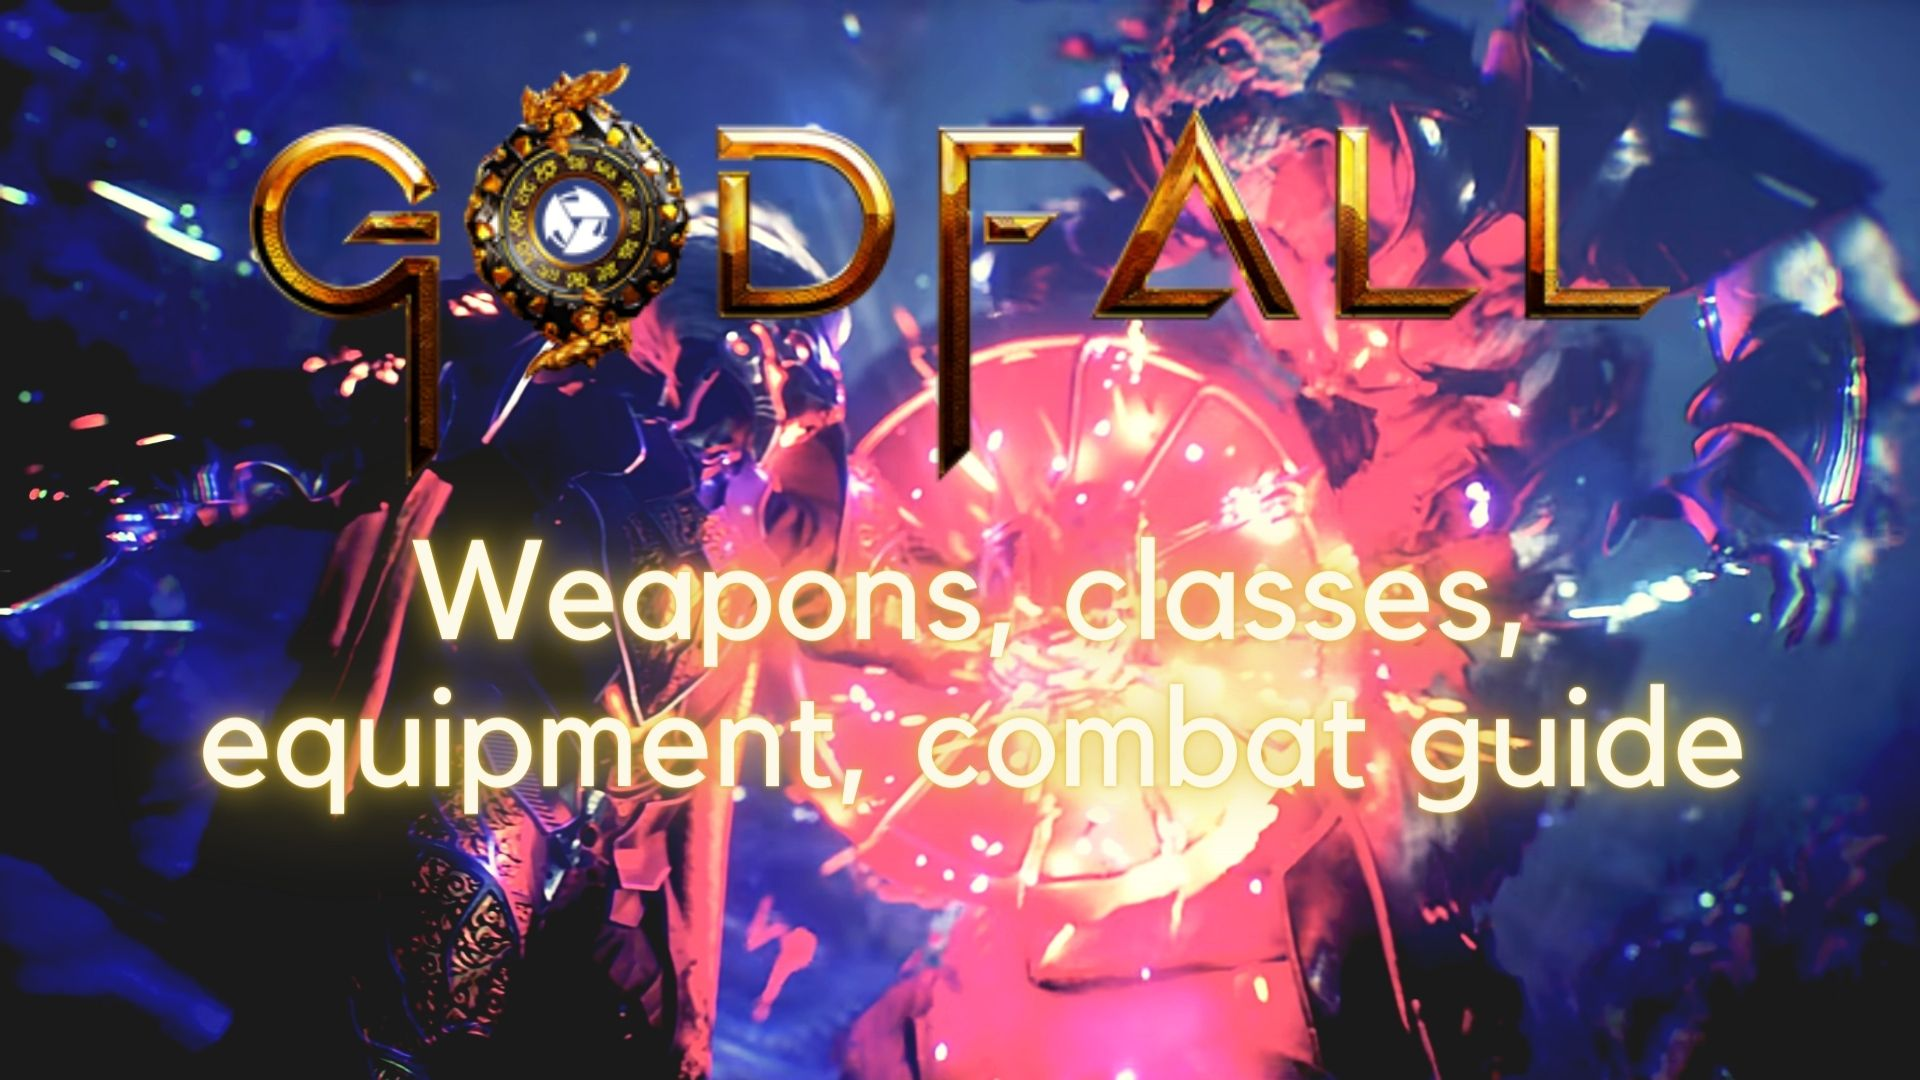 Advertising a Godfall wepaons, classes, equipment, combat guide